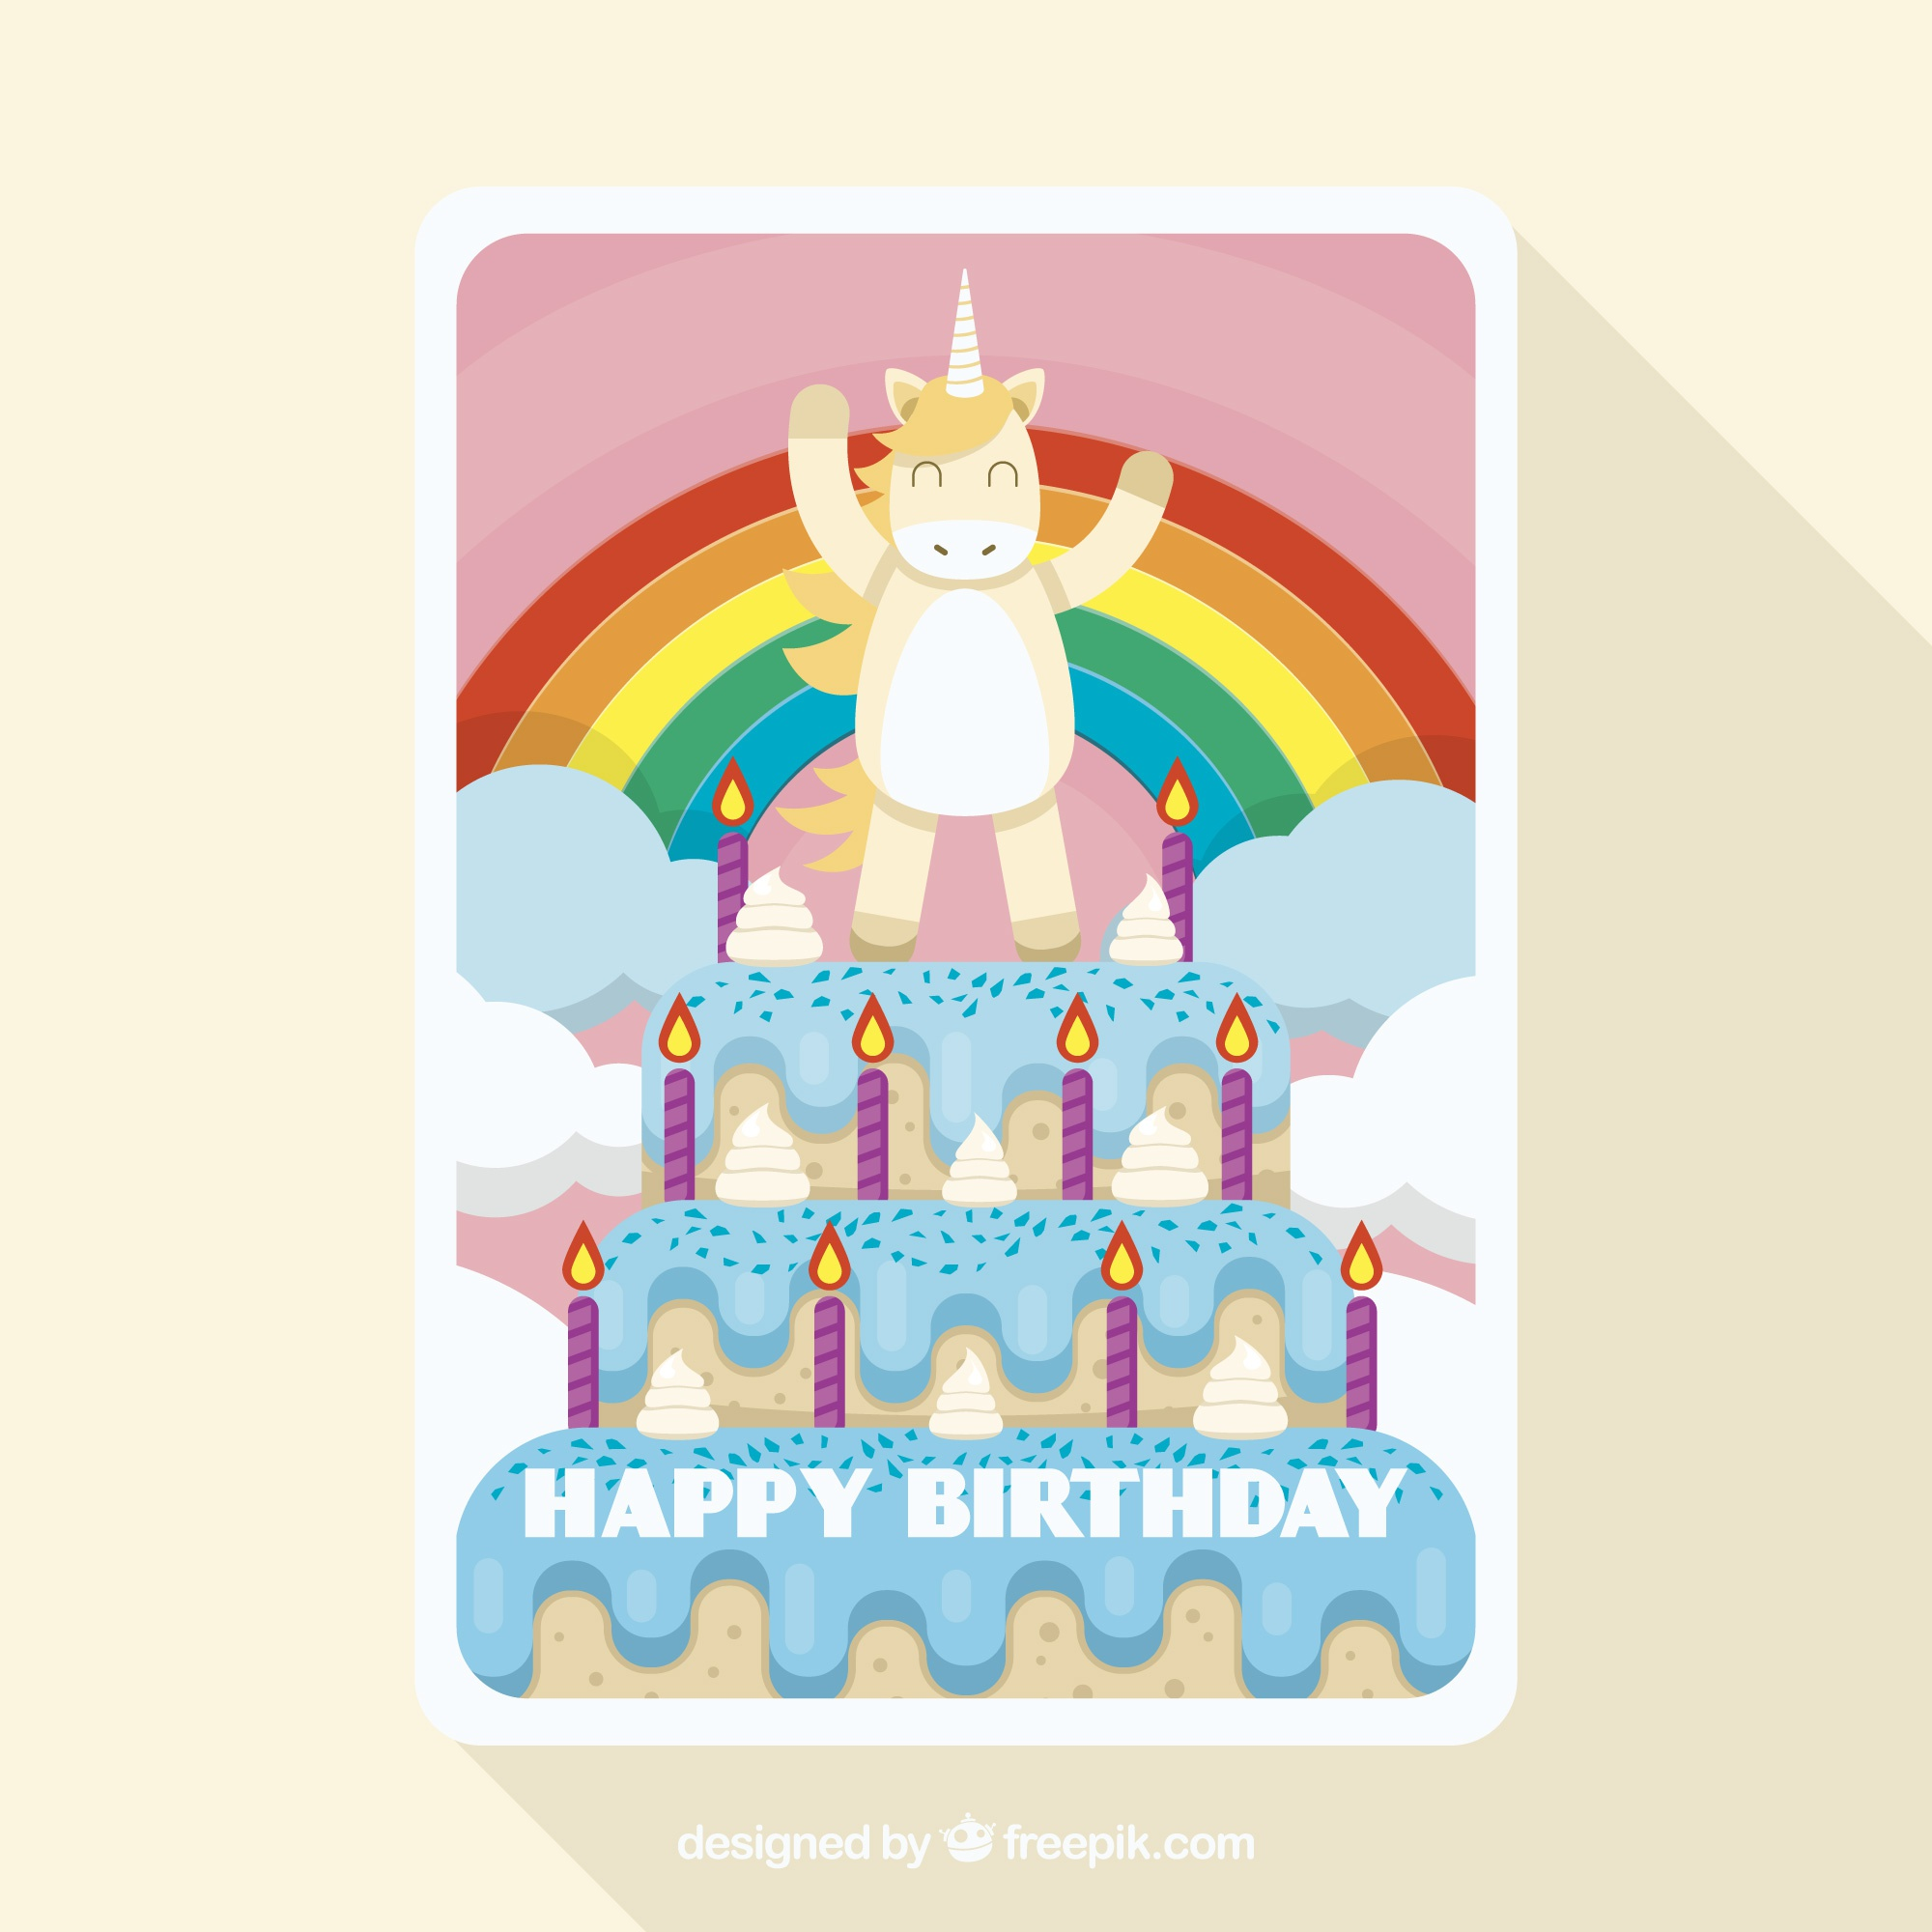 Funny birthday card with a unicorn on a cake